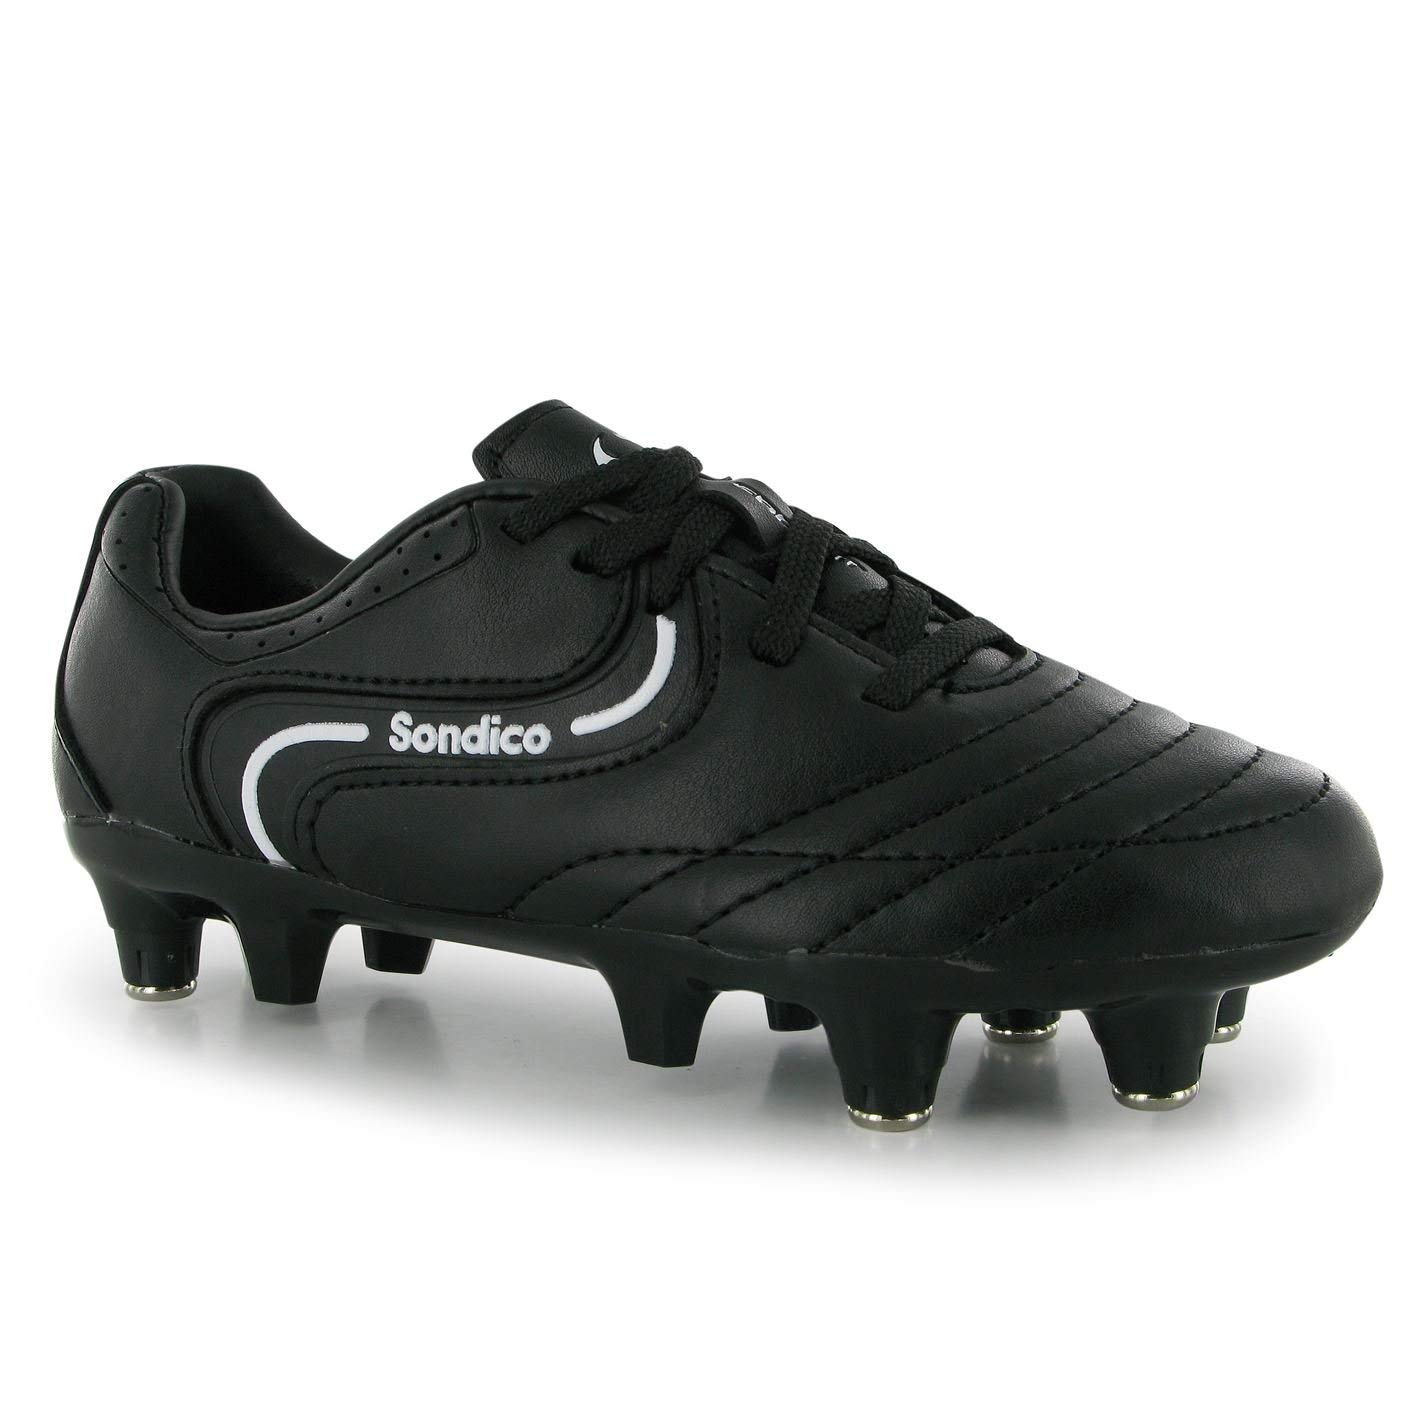 9326ac572 Get Quotations · Sondico Kids Strike II SG Football Boots Boys Sports Shoes